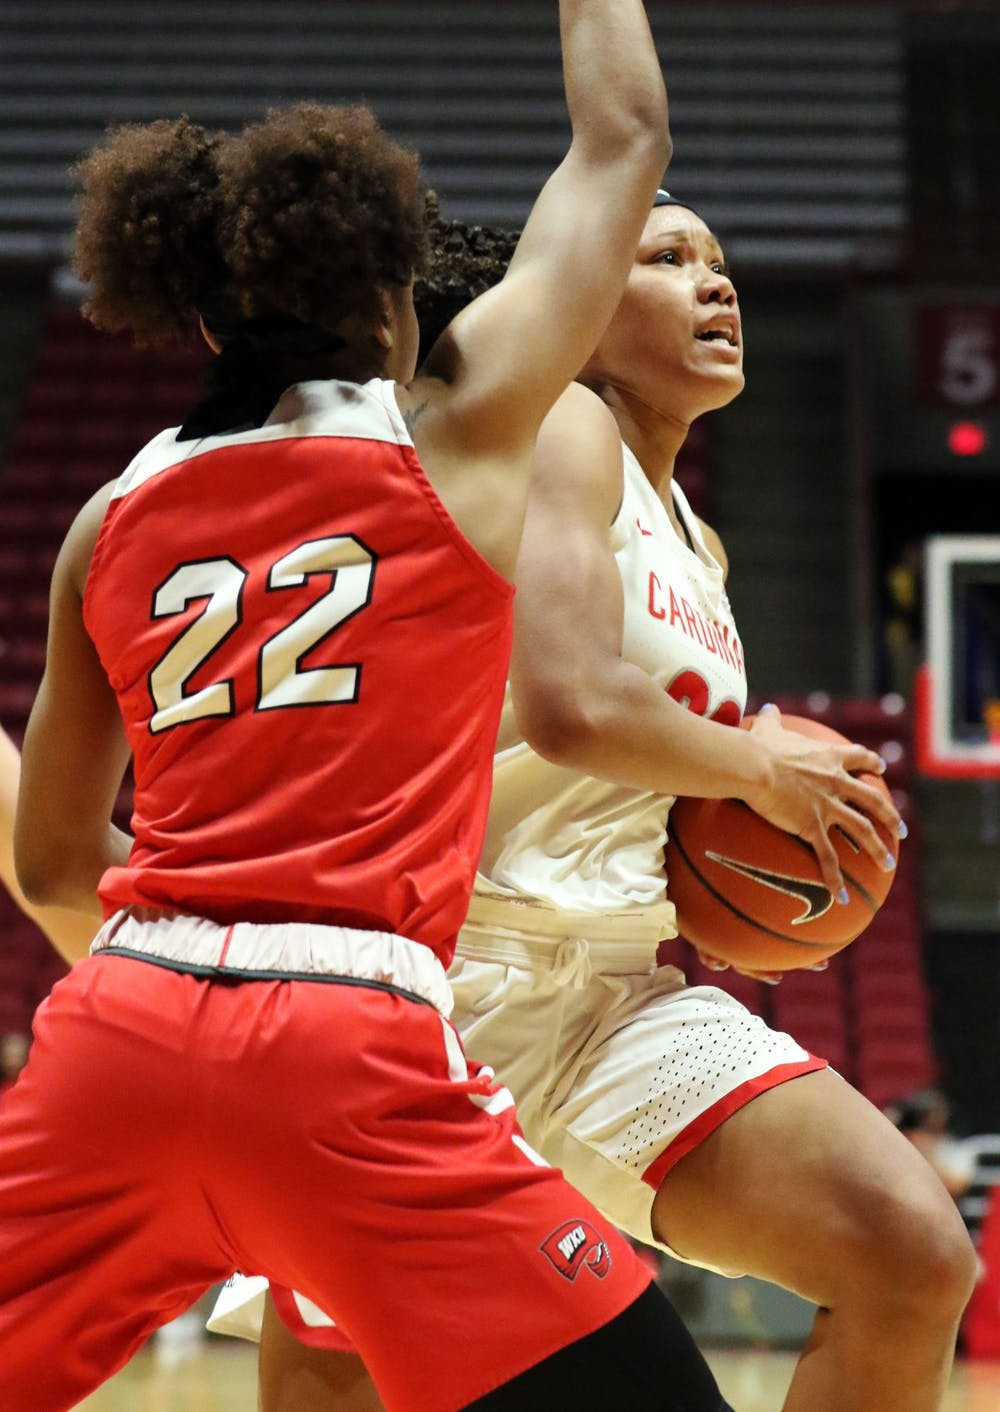 <p>Ball State junior forward Oshlynn Brown drives the ball in while being guarded by Western Kentucky junior guard Sherry Porter during the Cardinals' game against the Hilltoppers Dec. 7, 2019, at John E. Worthen Arena. Brown was Ball States leading scorer with 22 points. <strong>Paige Grider, DN&nbsp;</strong></p>